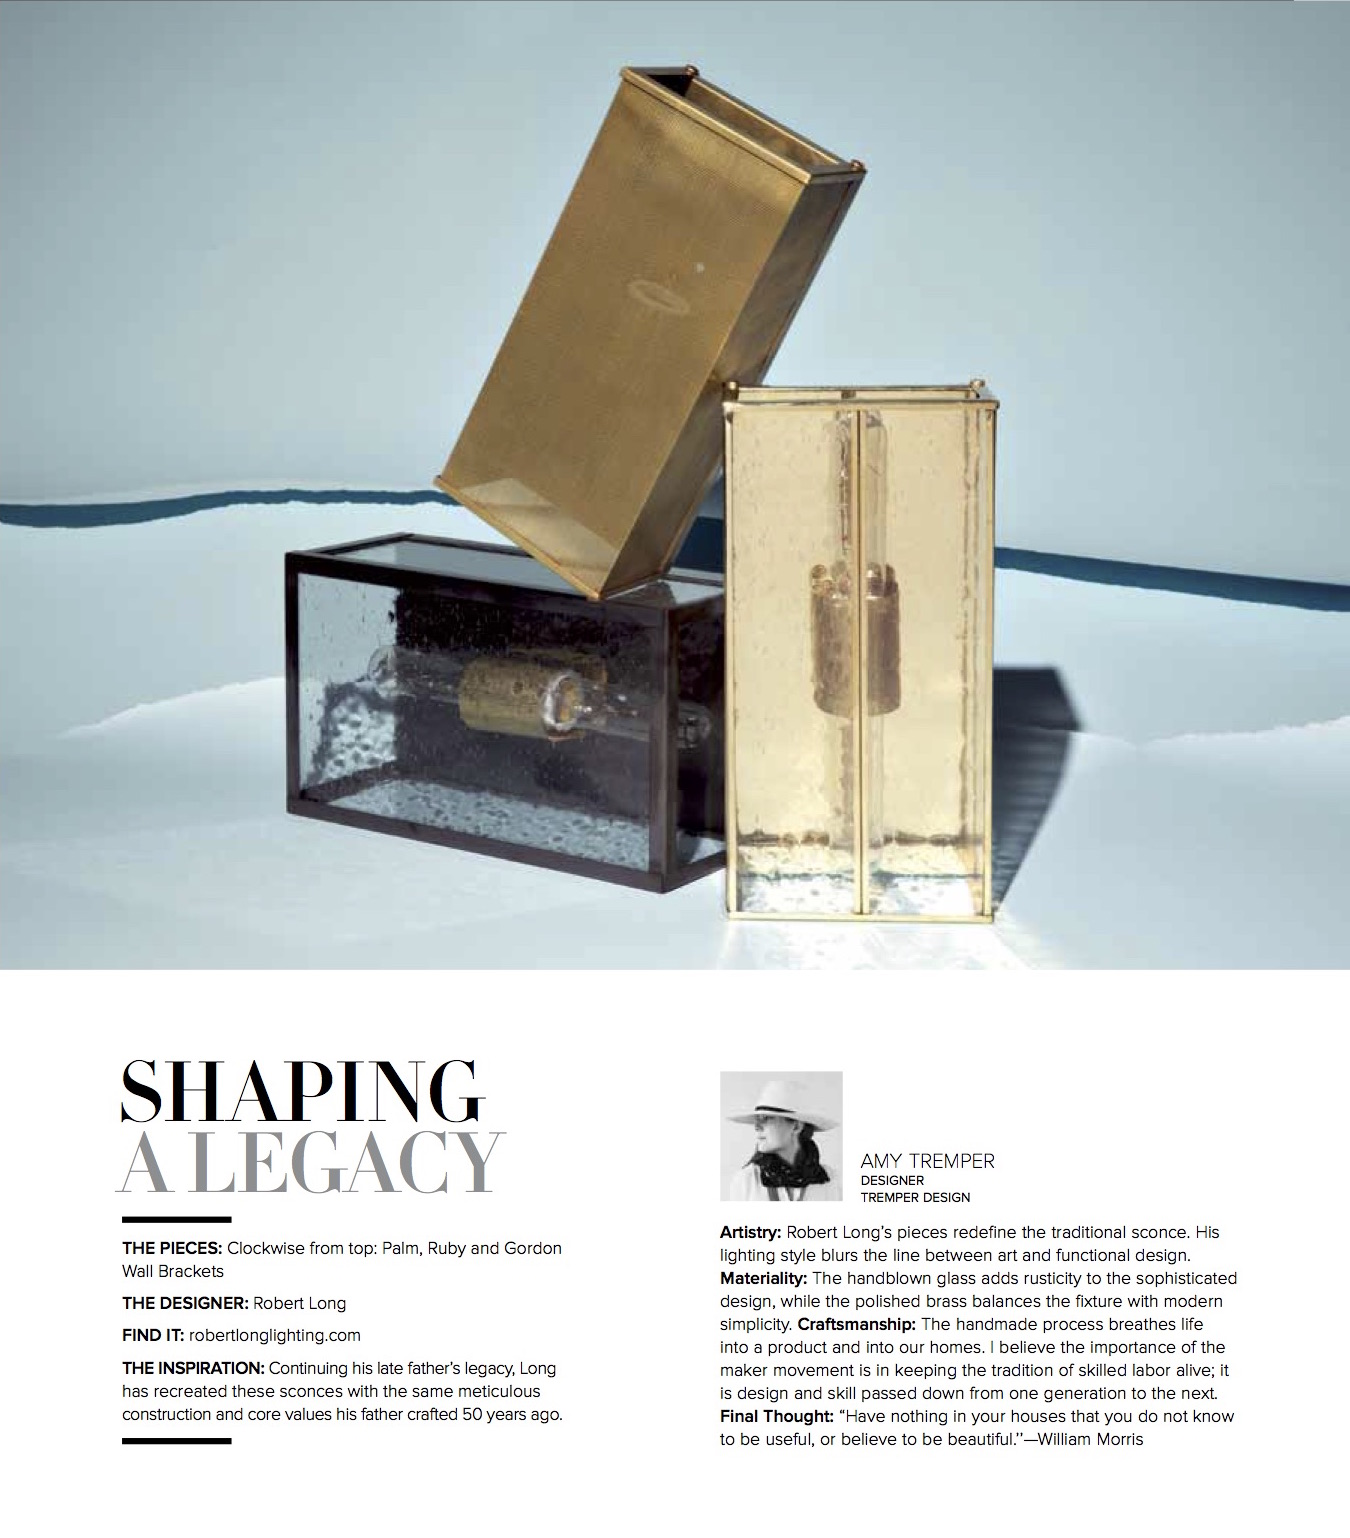 The Palm, Ruby, and Gordon Wall Brackets showcased in Luxe Magazine.